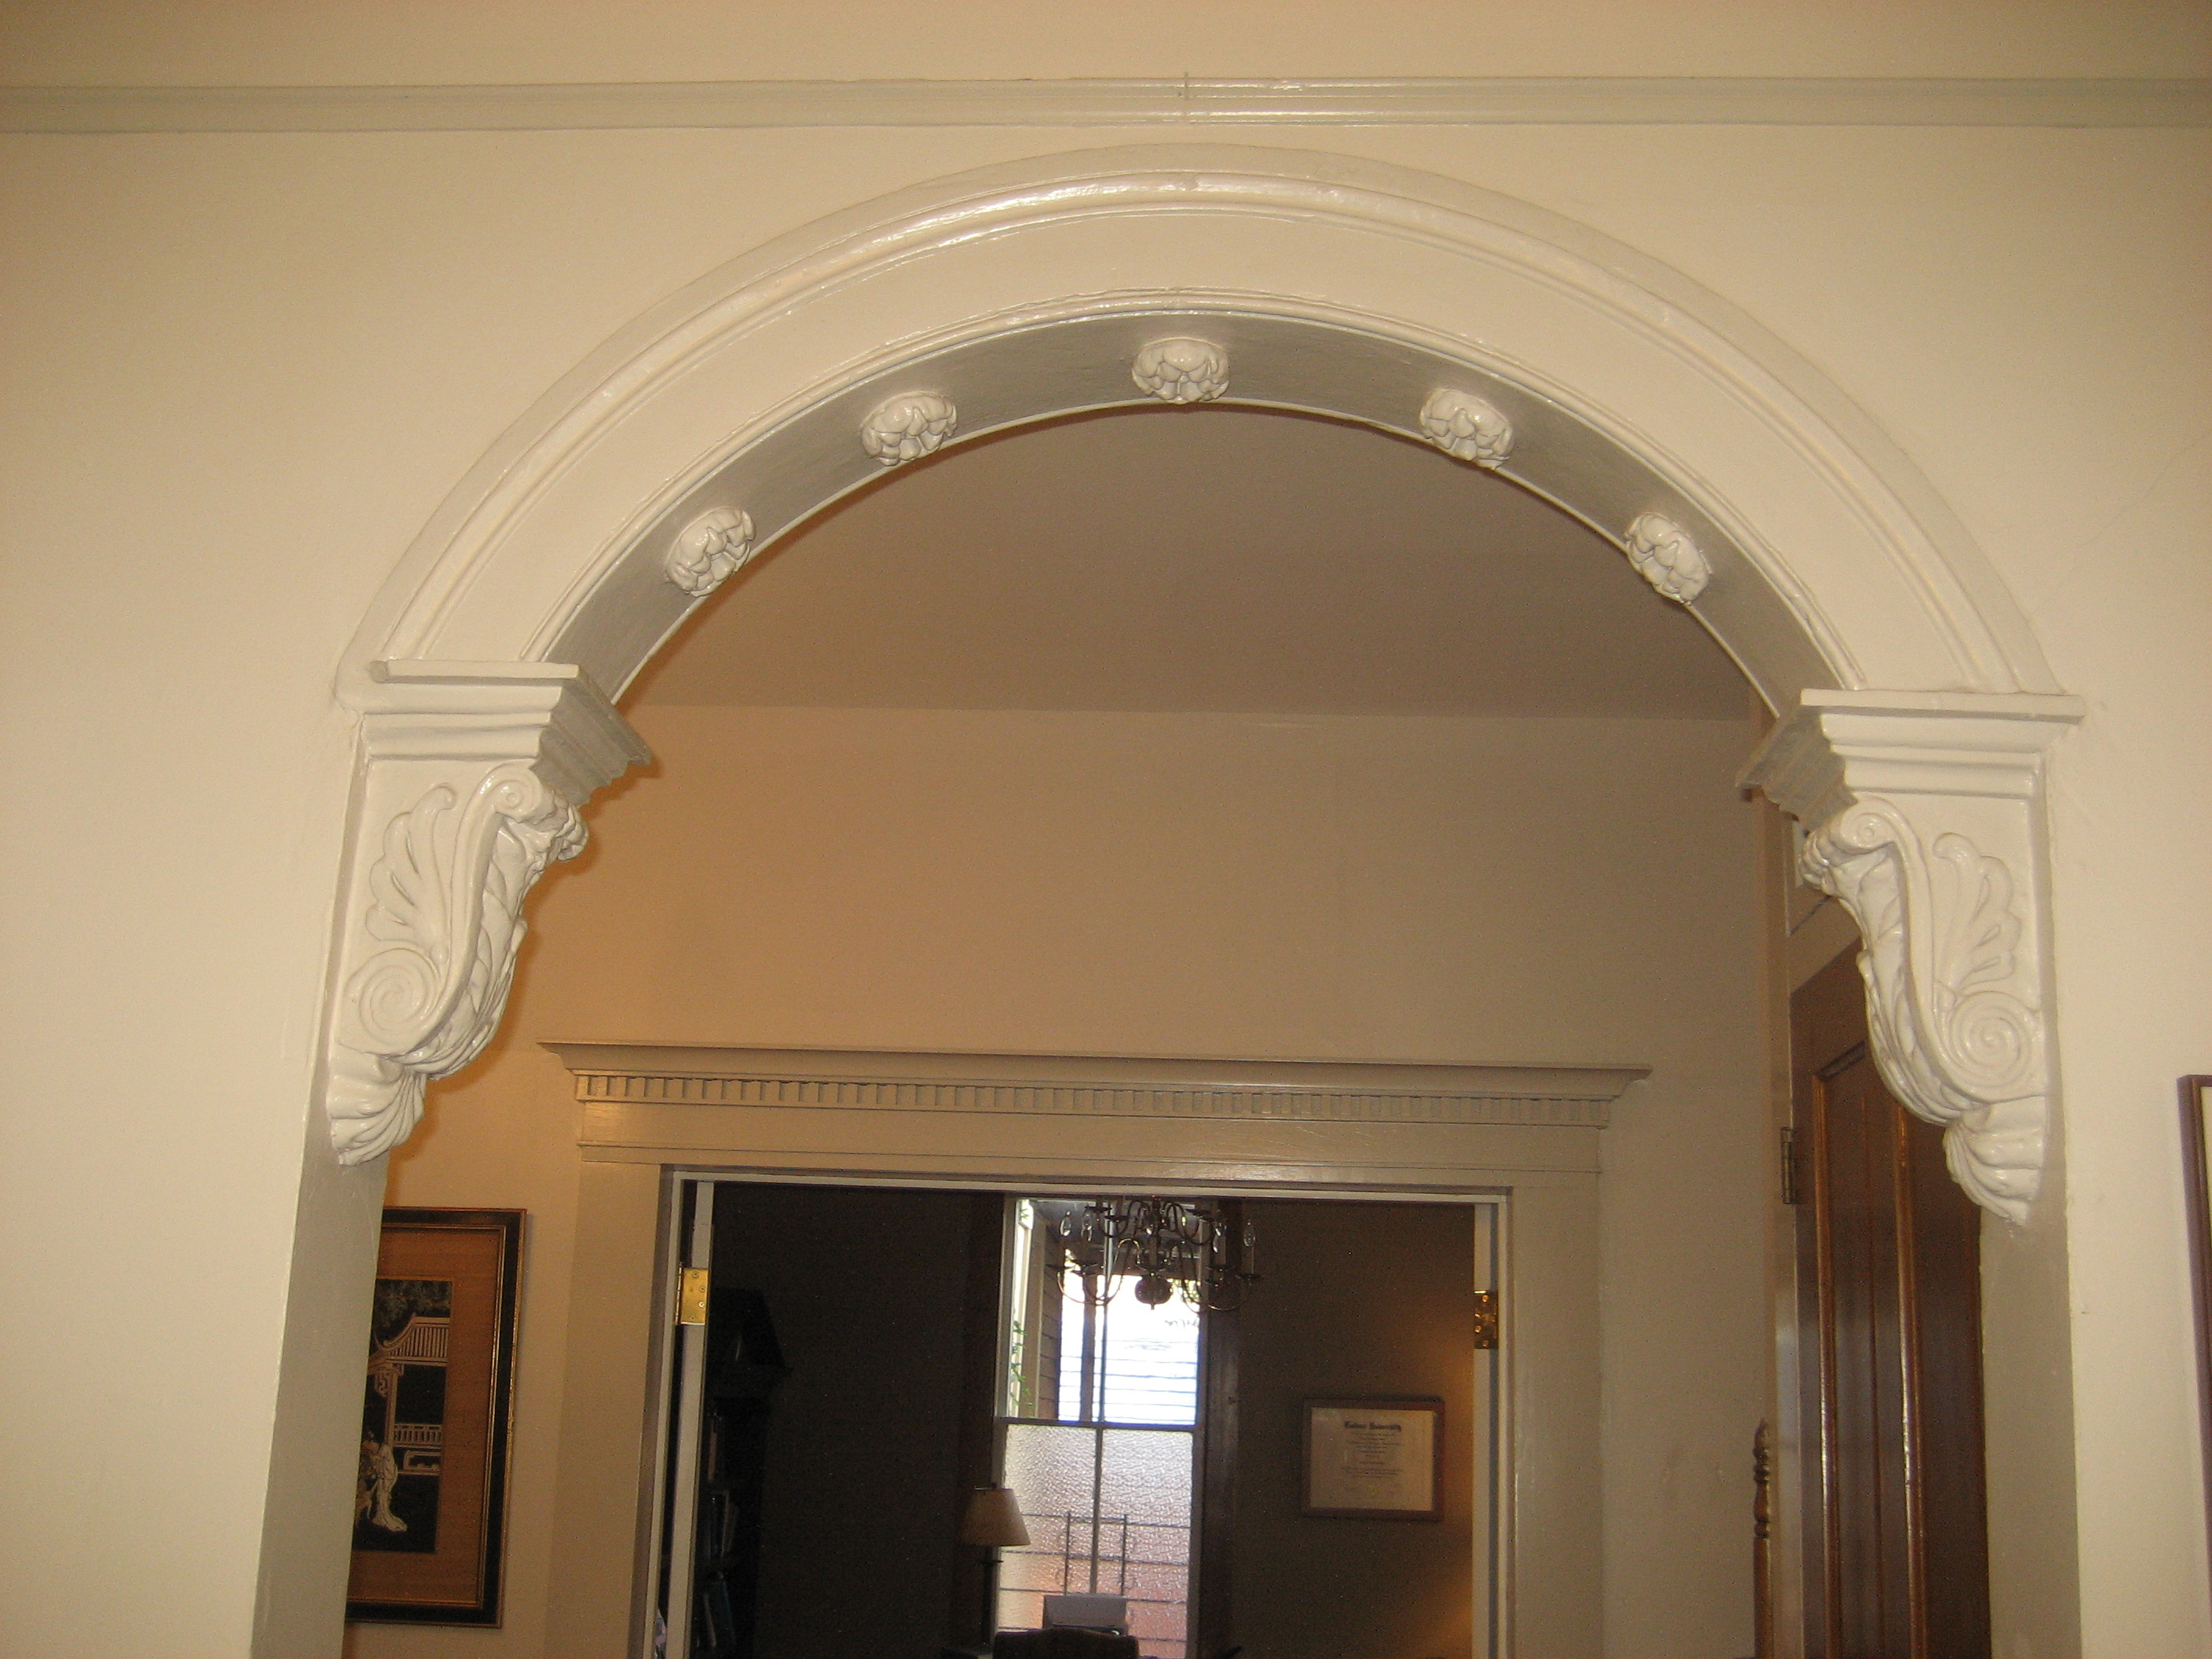 28 home designs internal house doorway 25 best ideas about arch doorway on pinterest Home arch design